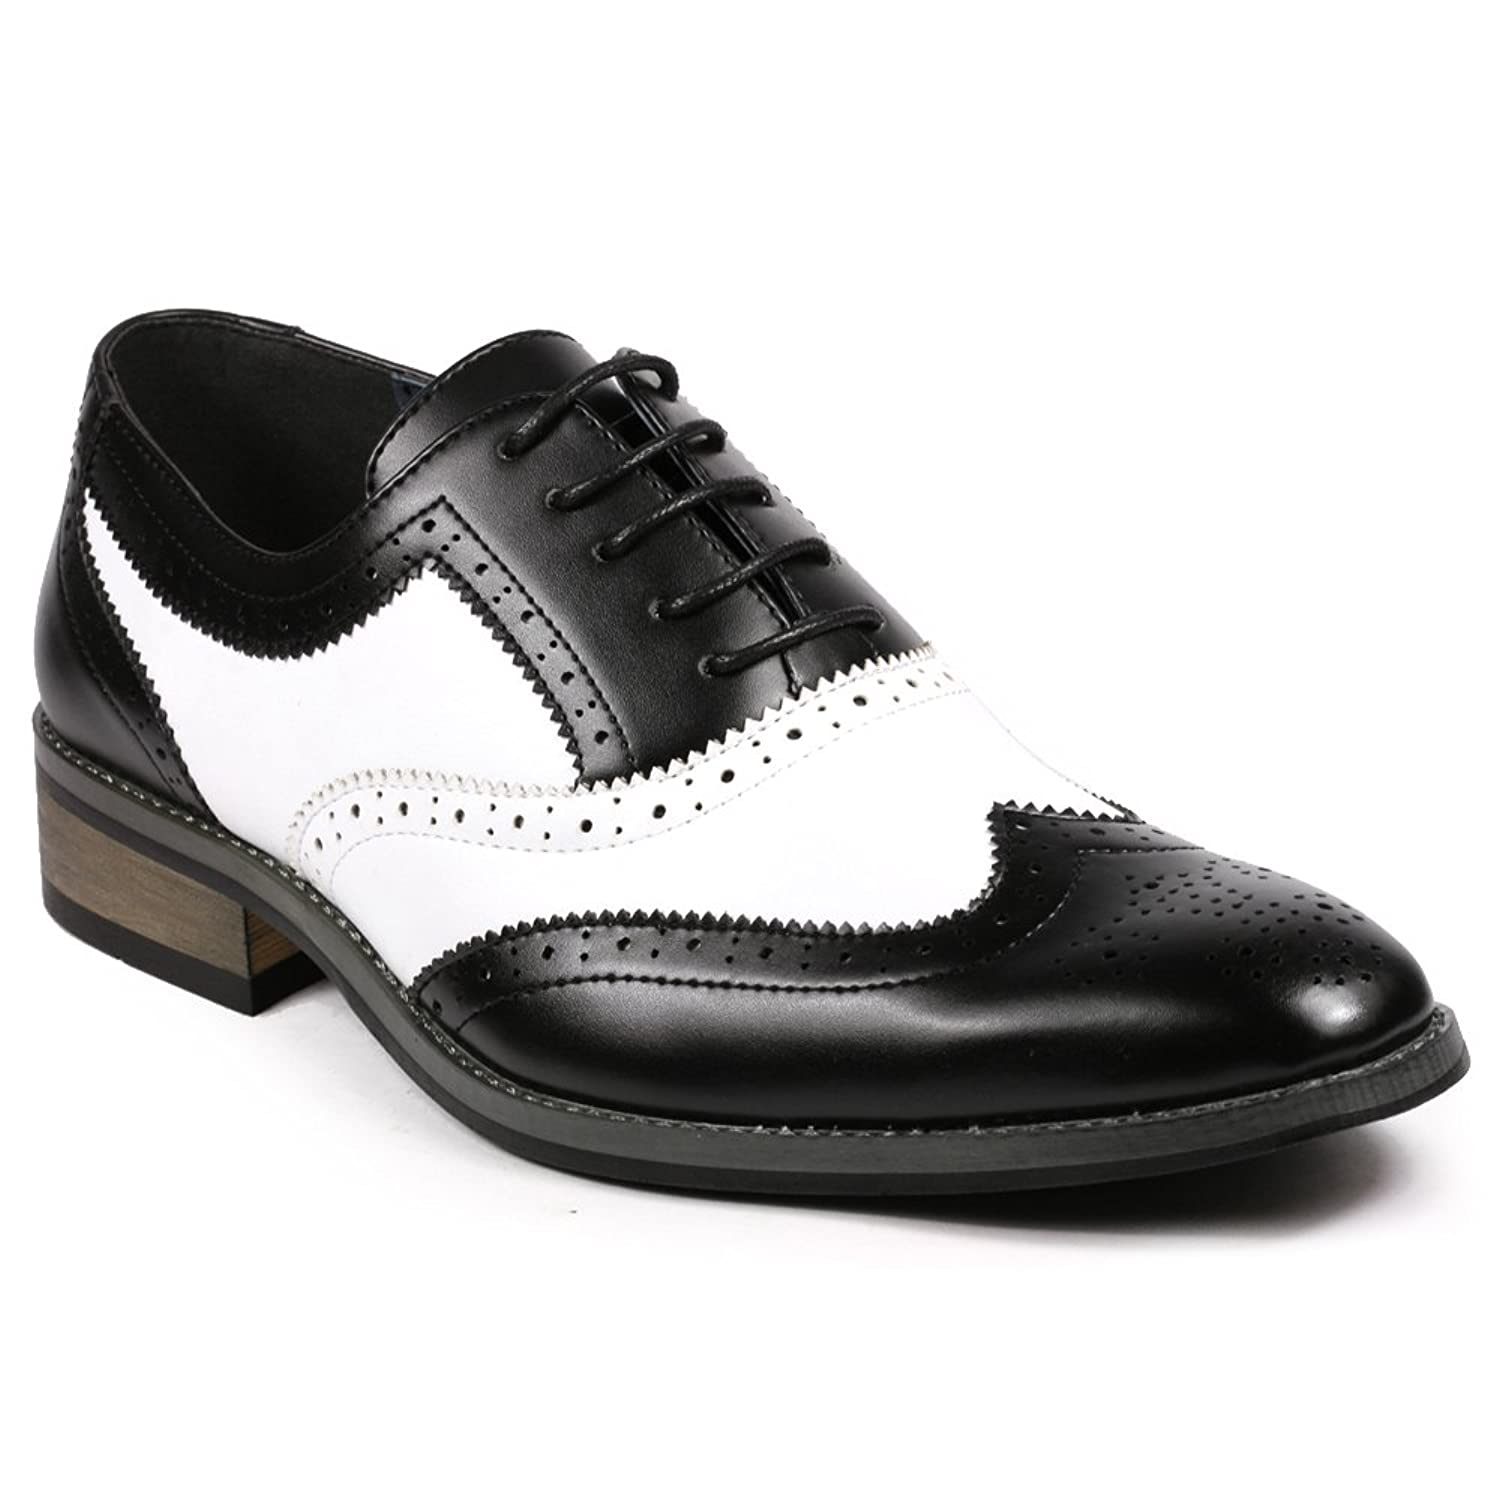 1920s Style Mens Shoes | Peaky Blinders Boots UV Signature PA002 Mens Two Tone Perforated Wing Tip Lace Up Oxford Dress Shoes $44.99 AT vintagedancer.com